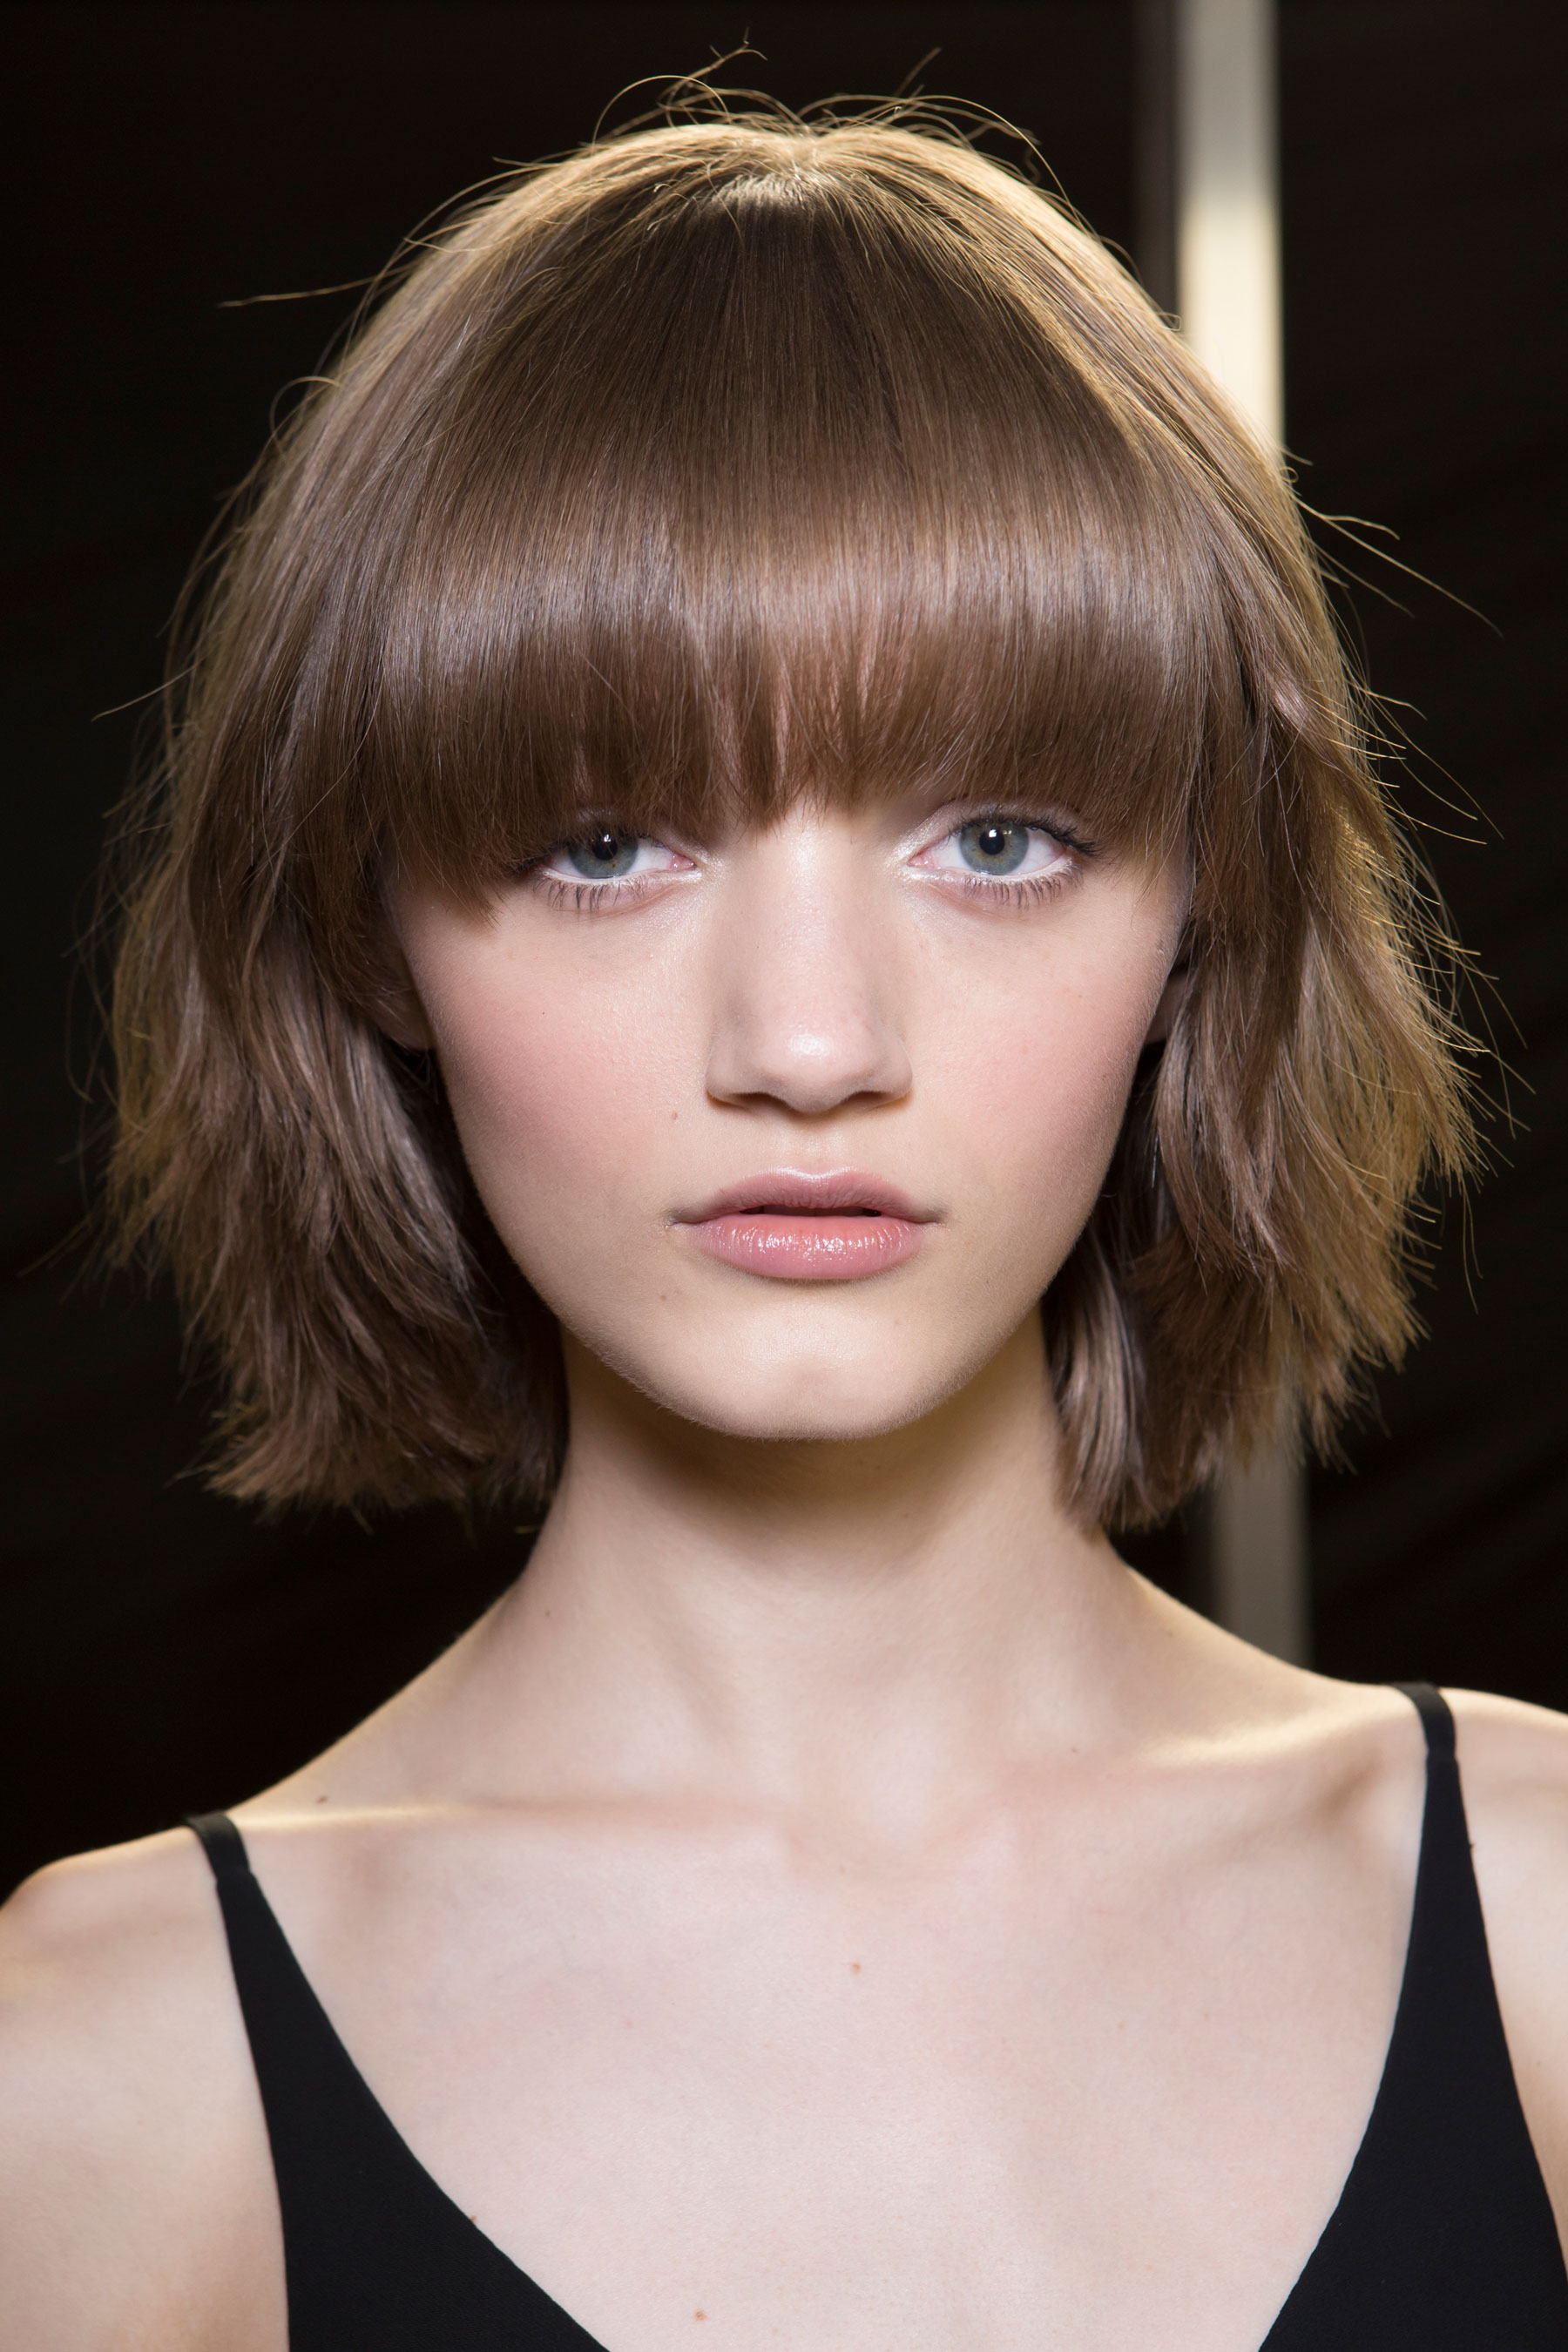 versace-backstage-beauty-spring-2016-fashion-show-the-impression-083